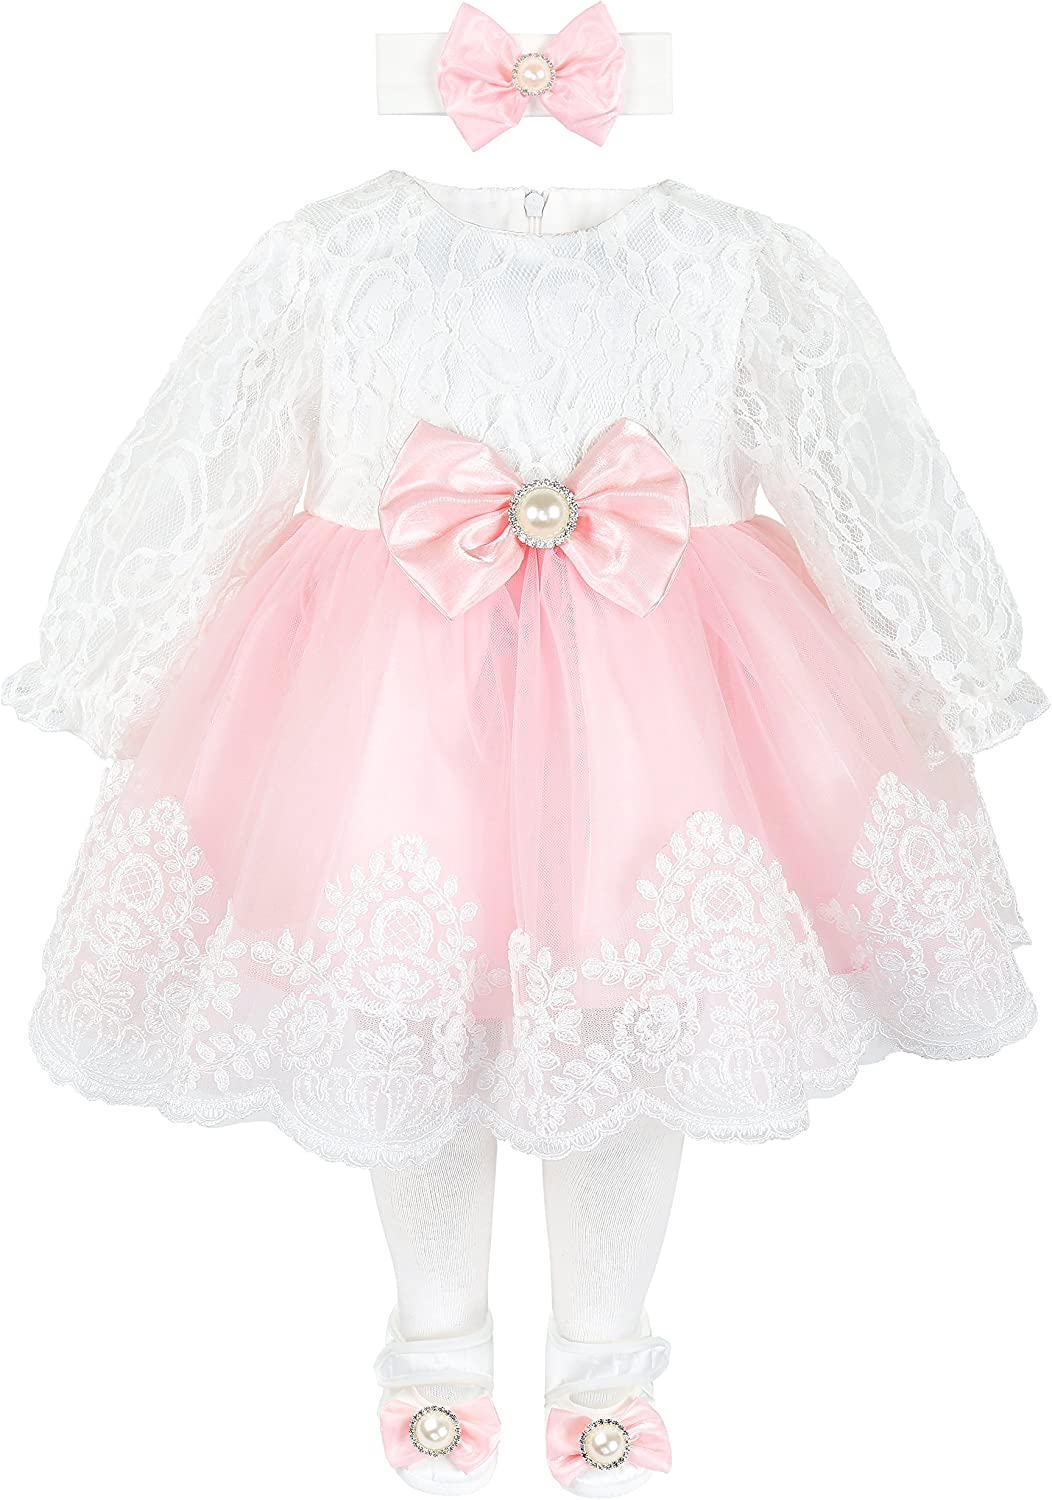 Taffy Baby Girl Newborn Lace Long Sleeve Princess Dress Gown 6 Piece Deluxe Set